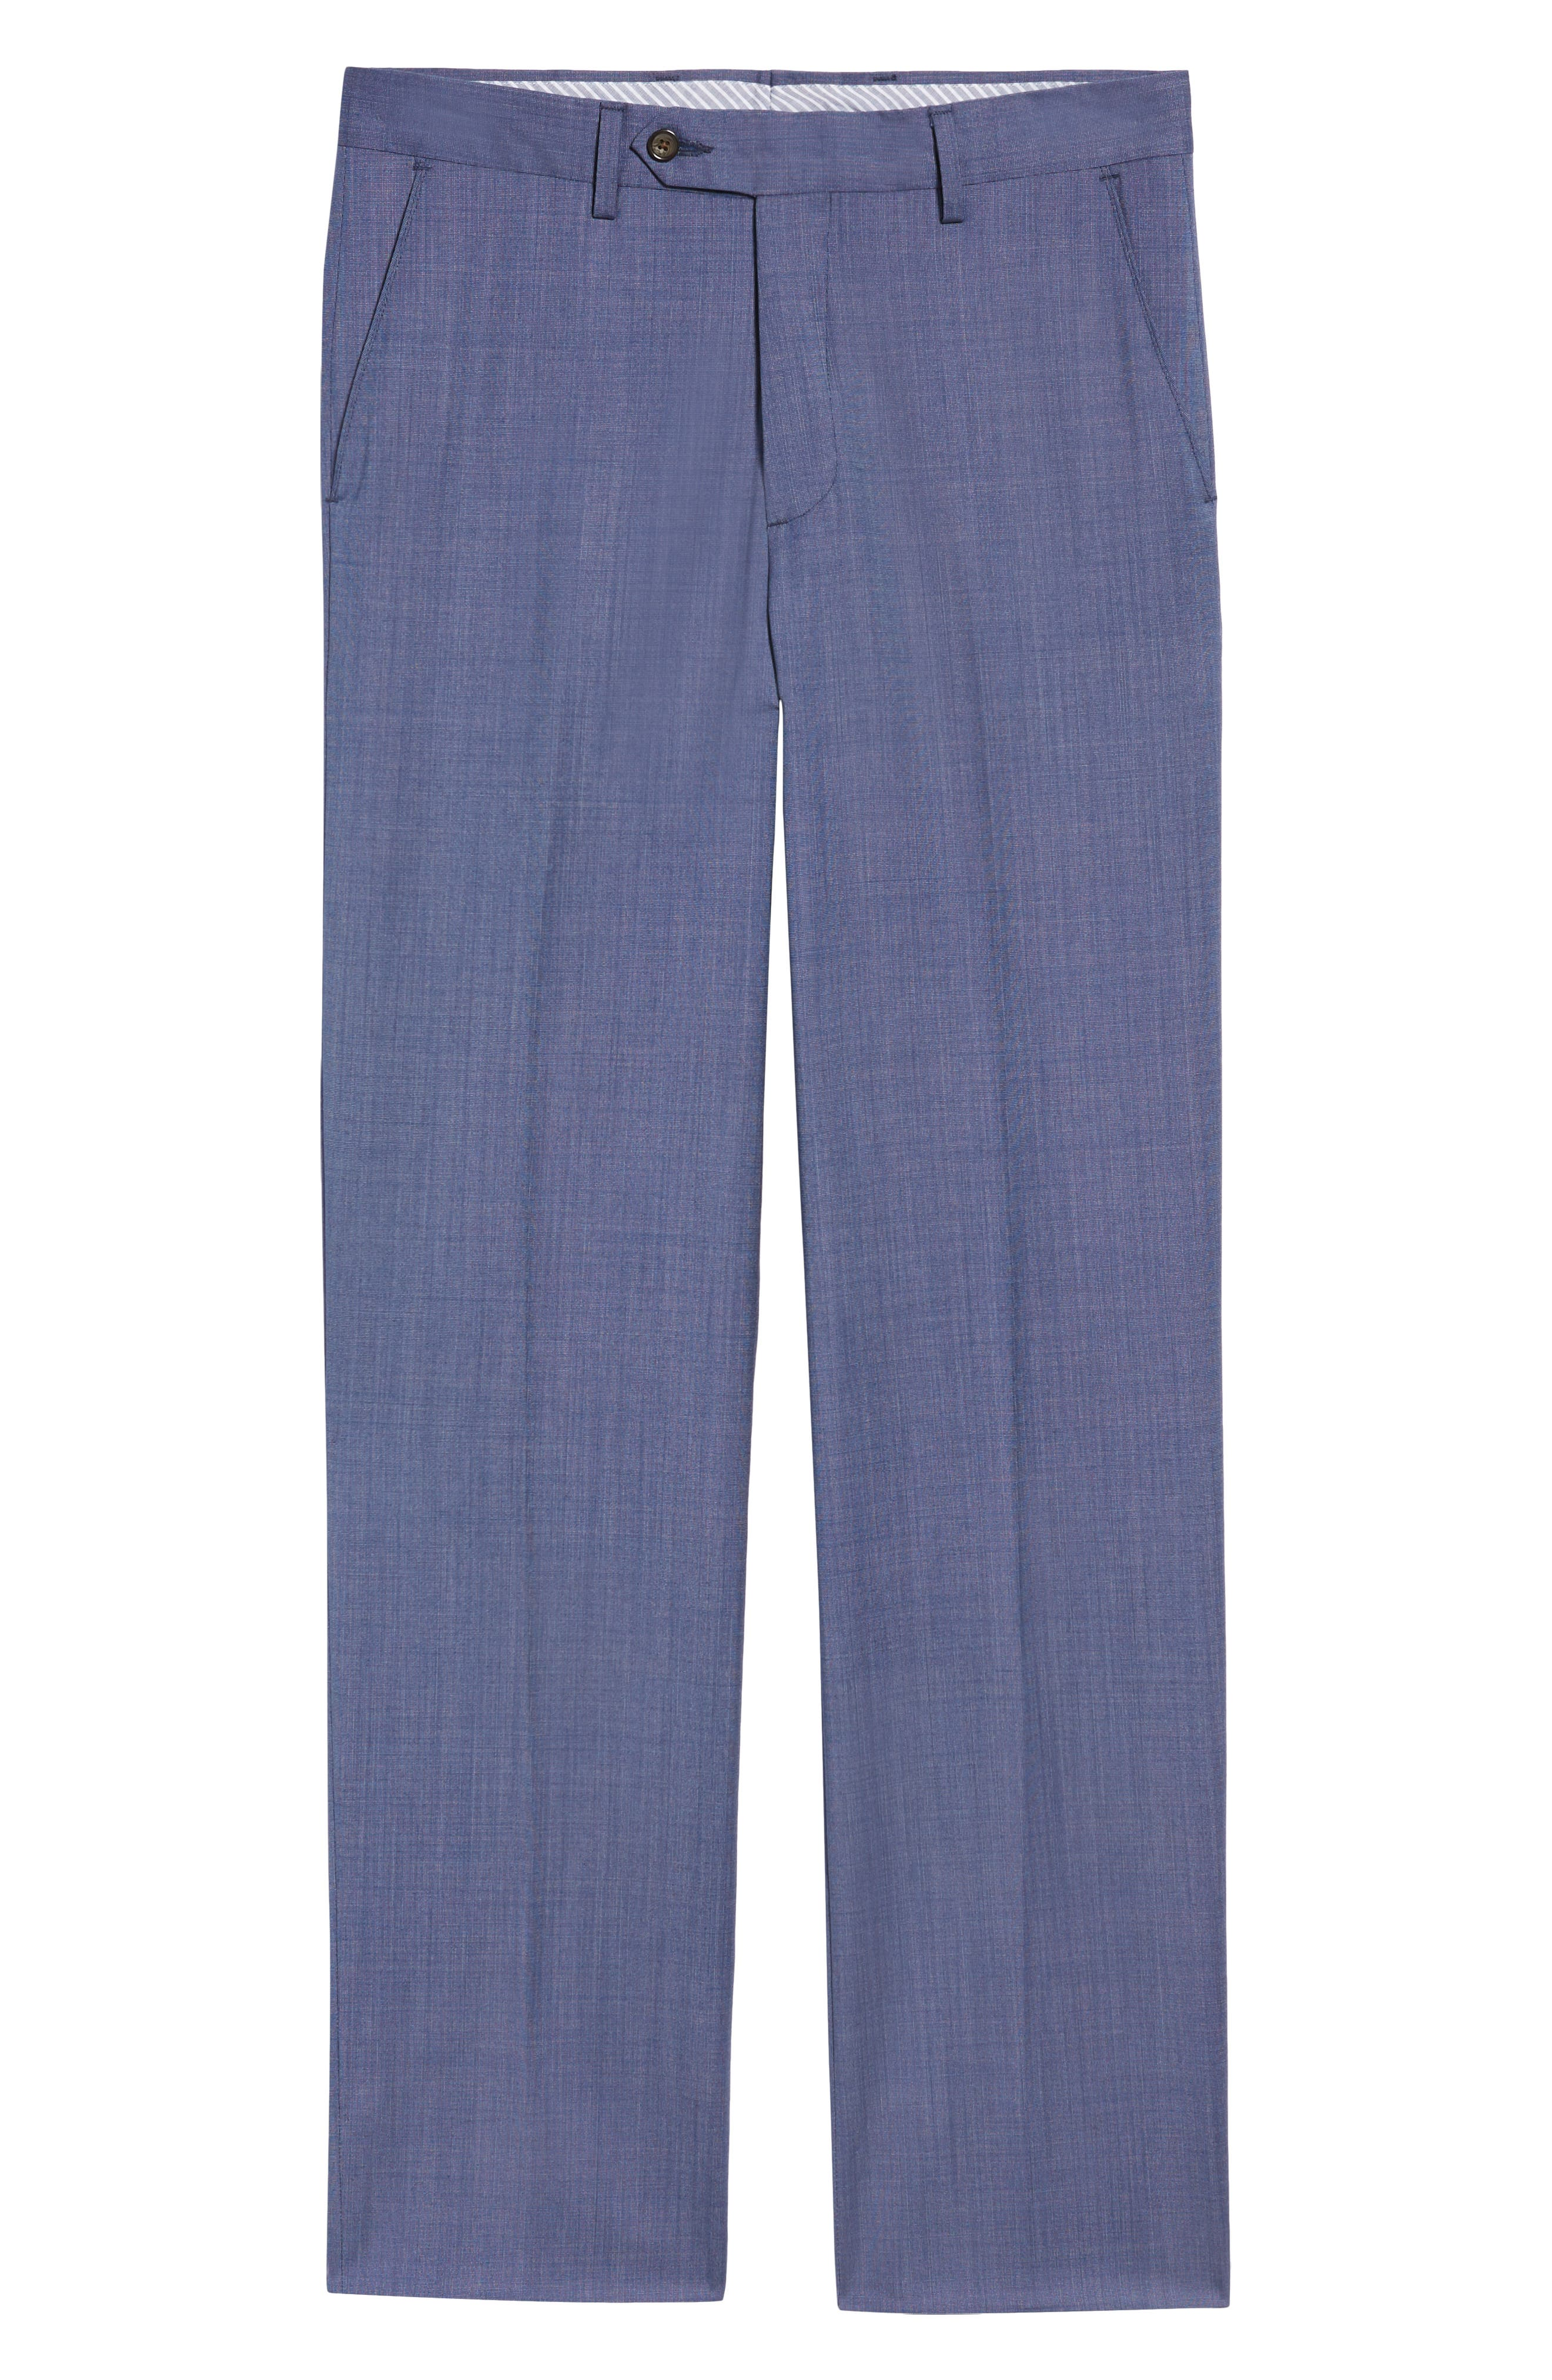 Manufacturing Flat Front Wool Trousers,                             Alternate thumbnail 6, color,                             BLUE